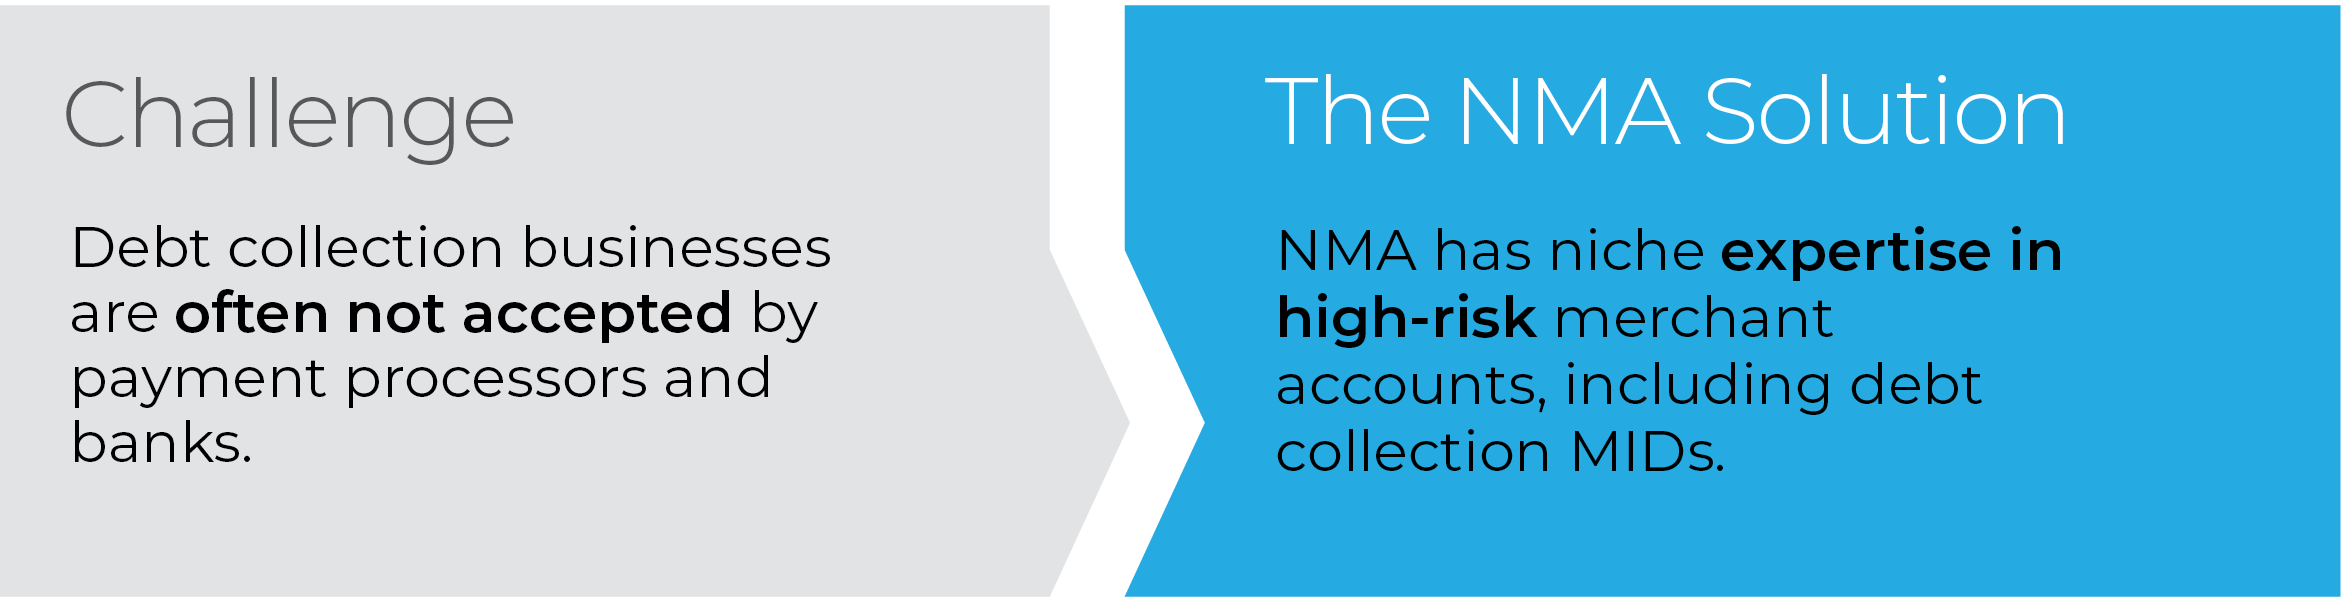 NMA has niche expertise in high-risk merchant accounts, including debt collection MIDs.